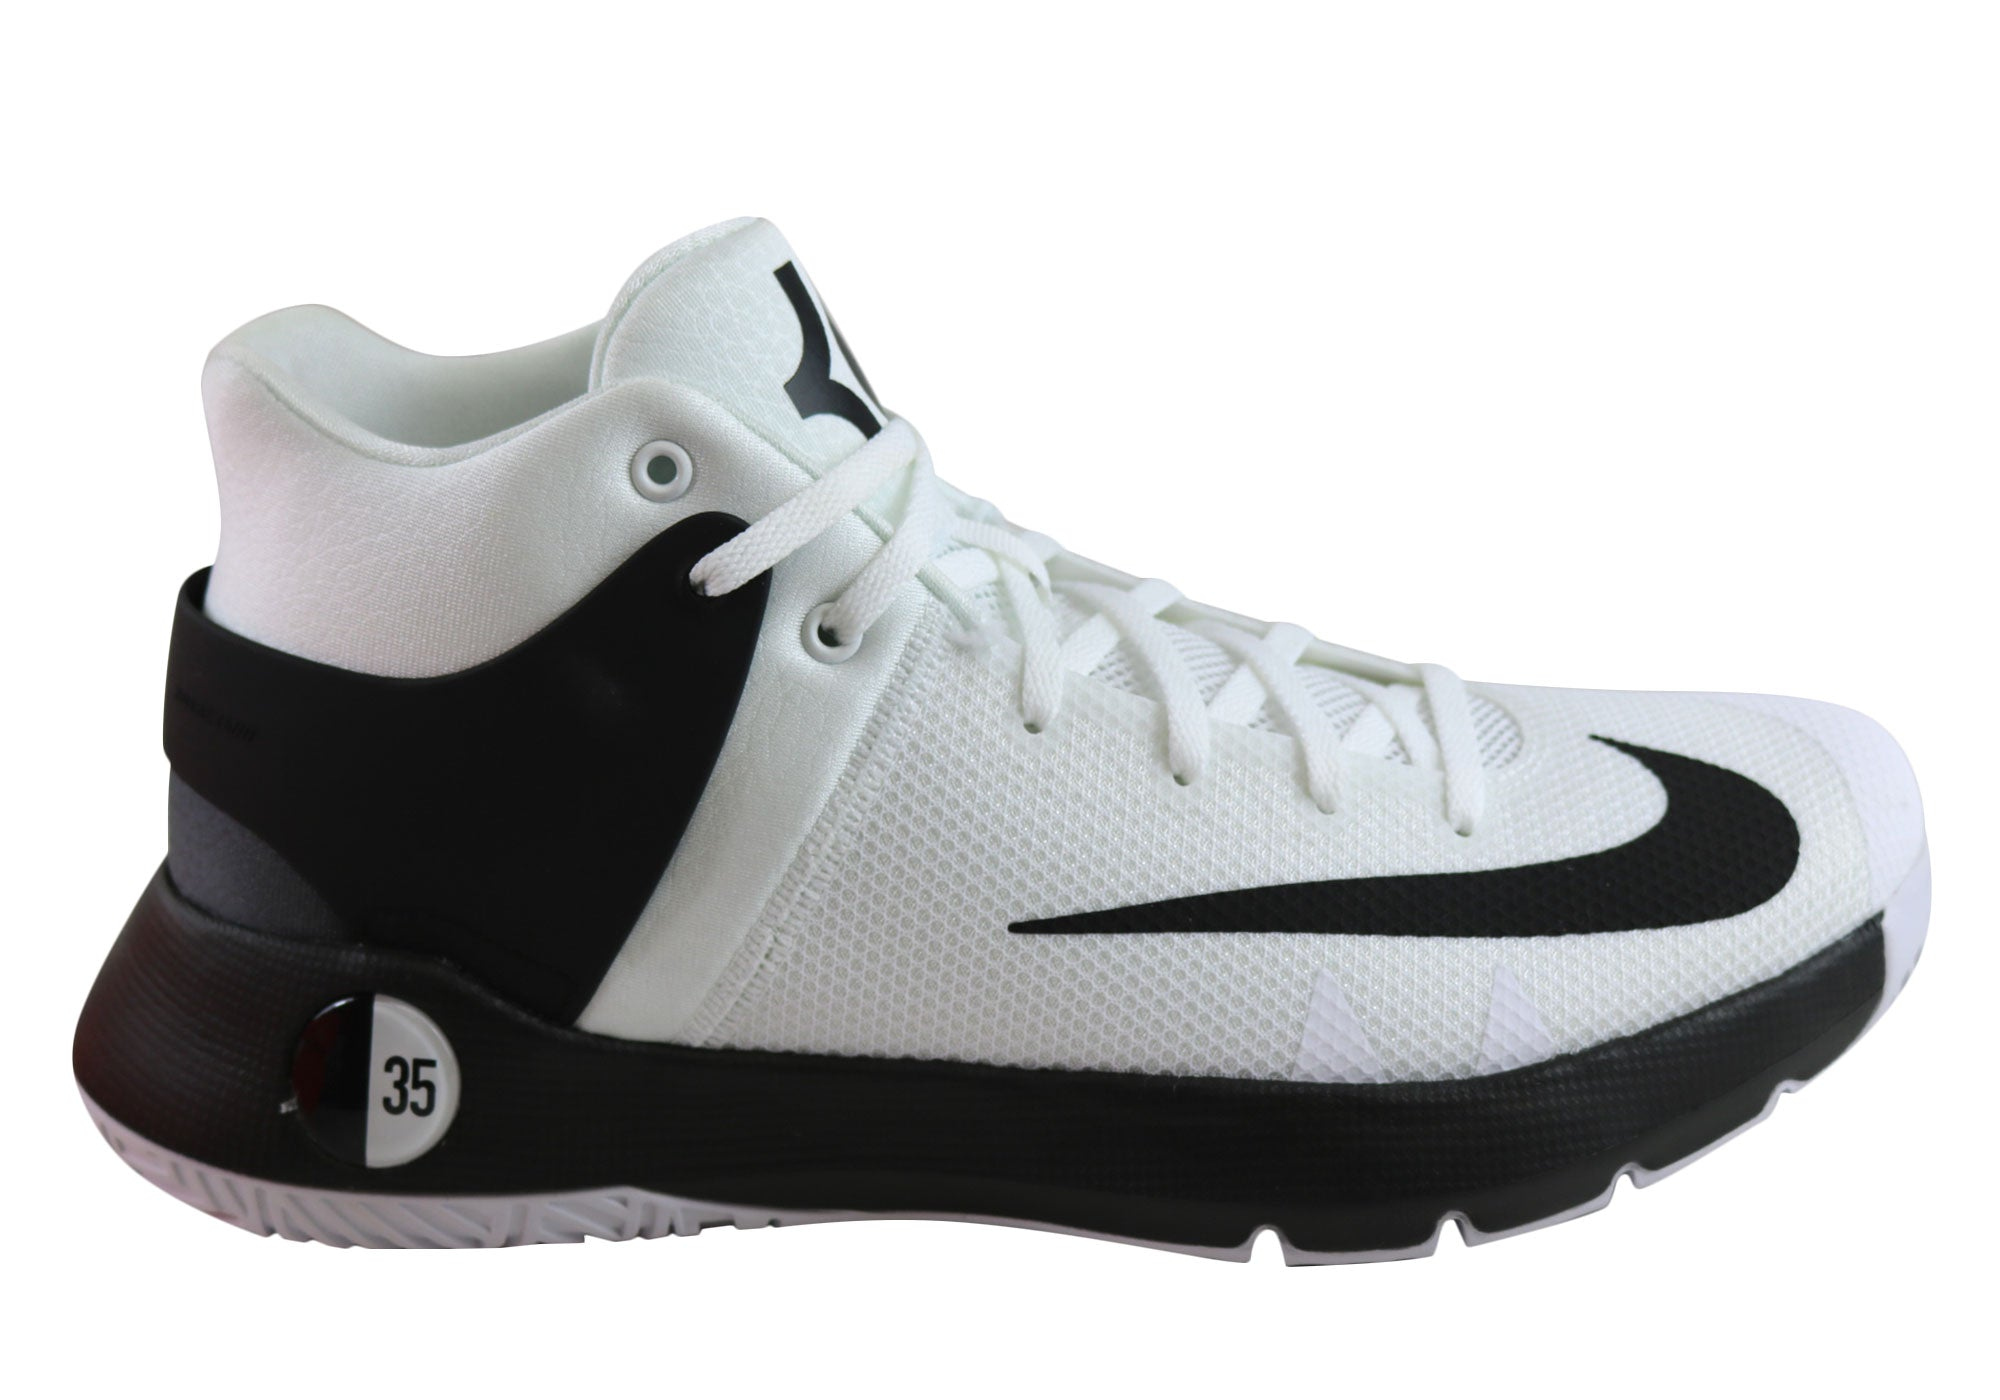 31c12a85aff5 ... new zealand new nike kd trey 5 iv tb mens cushioned kevin durant basketball  shoes 2692a